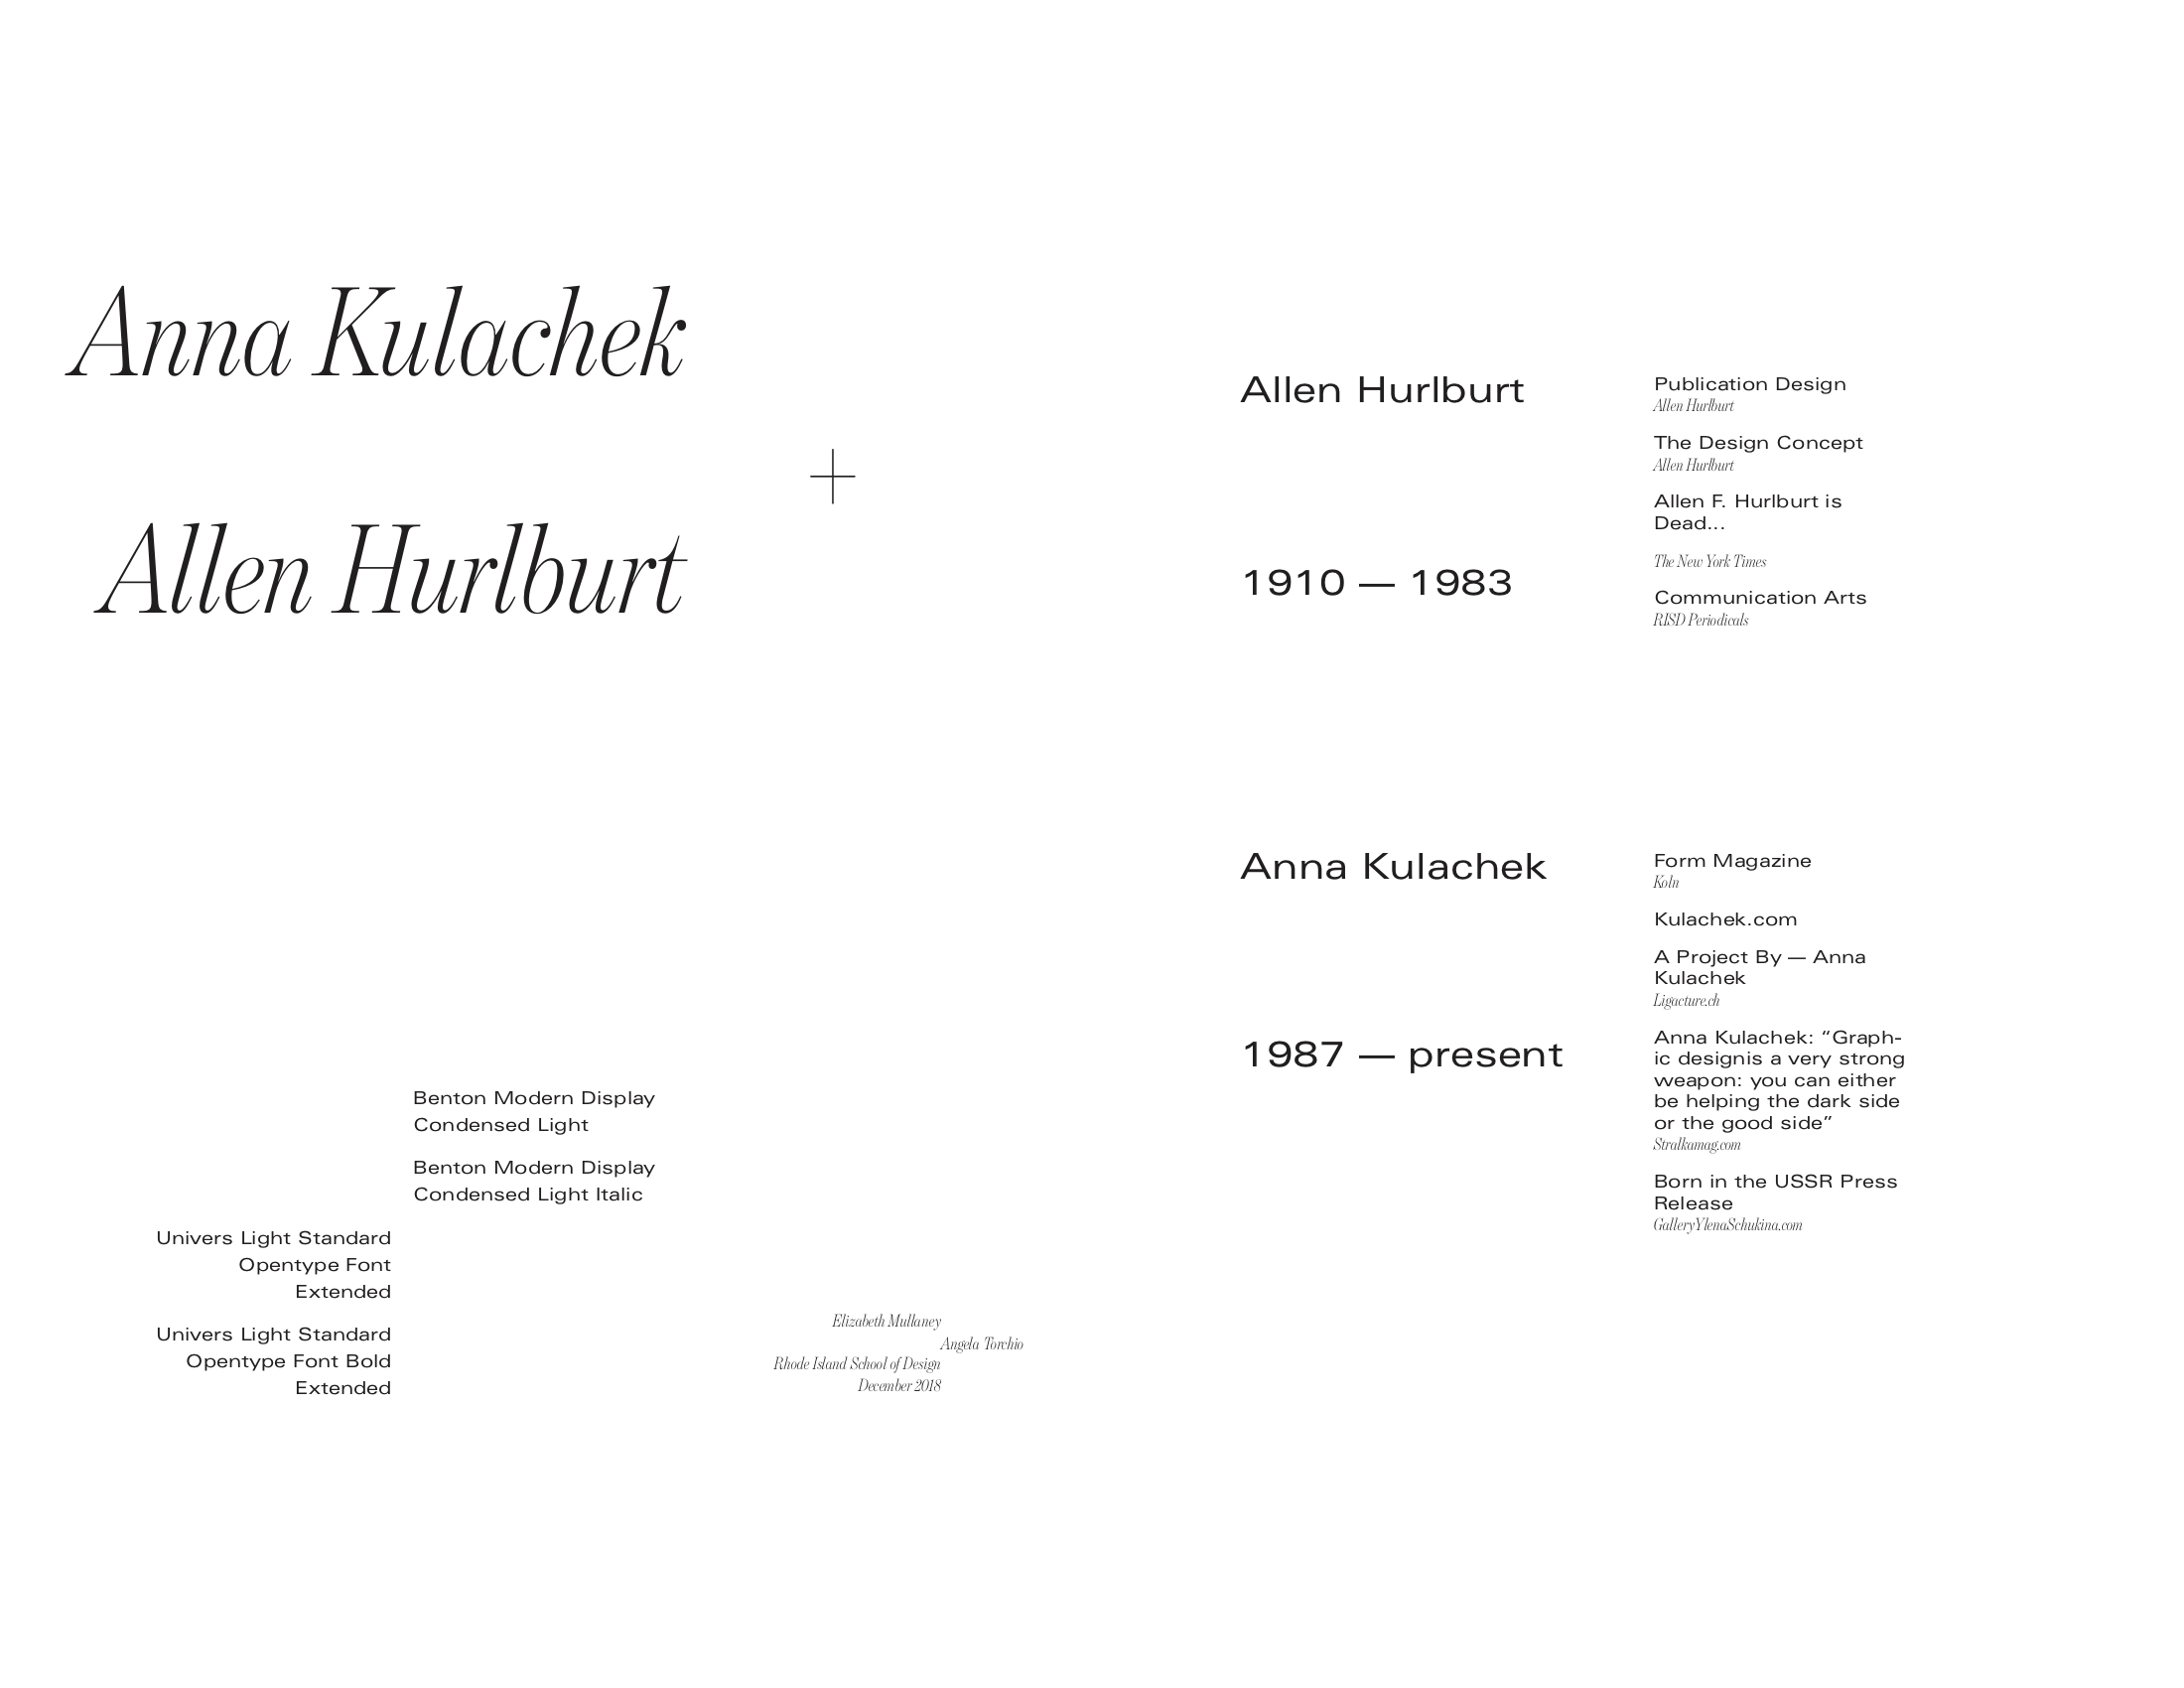 Elizabeth Mullaney — Two Designer Timelinea.jpg